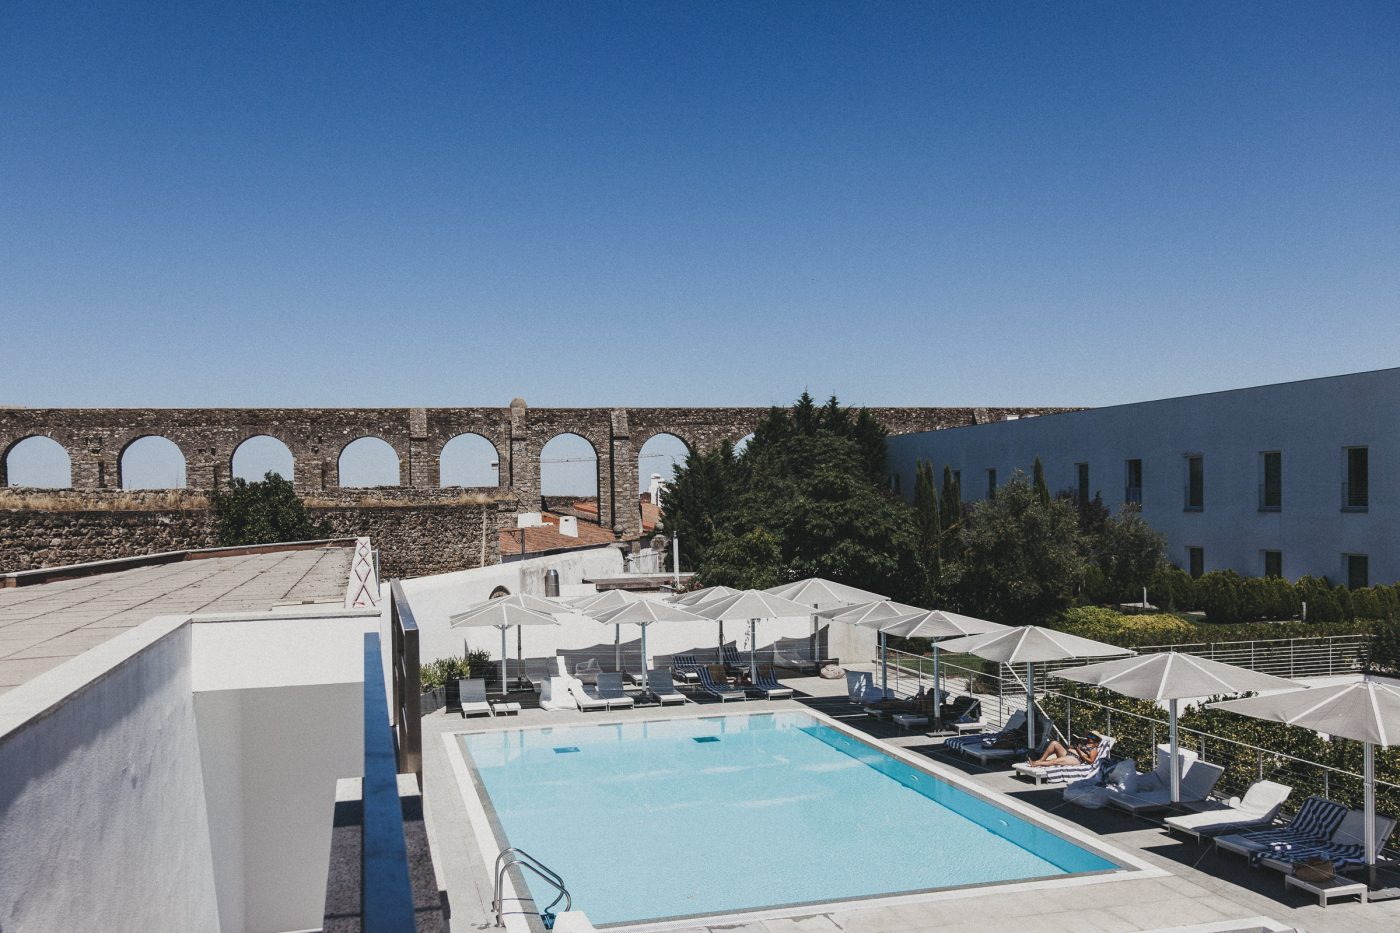 The Best Luxury Hotels In Portugal  luxury hotels The Best Luxury Hotels In Portugal alma de alecrim viagens evora mar dar aqueduto 012